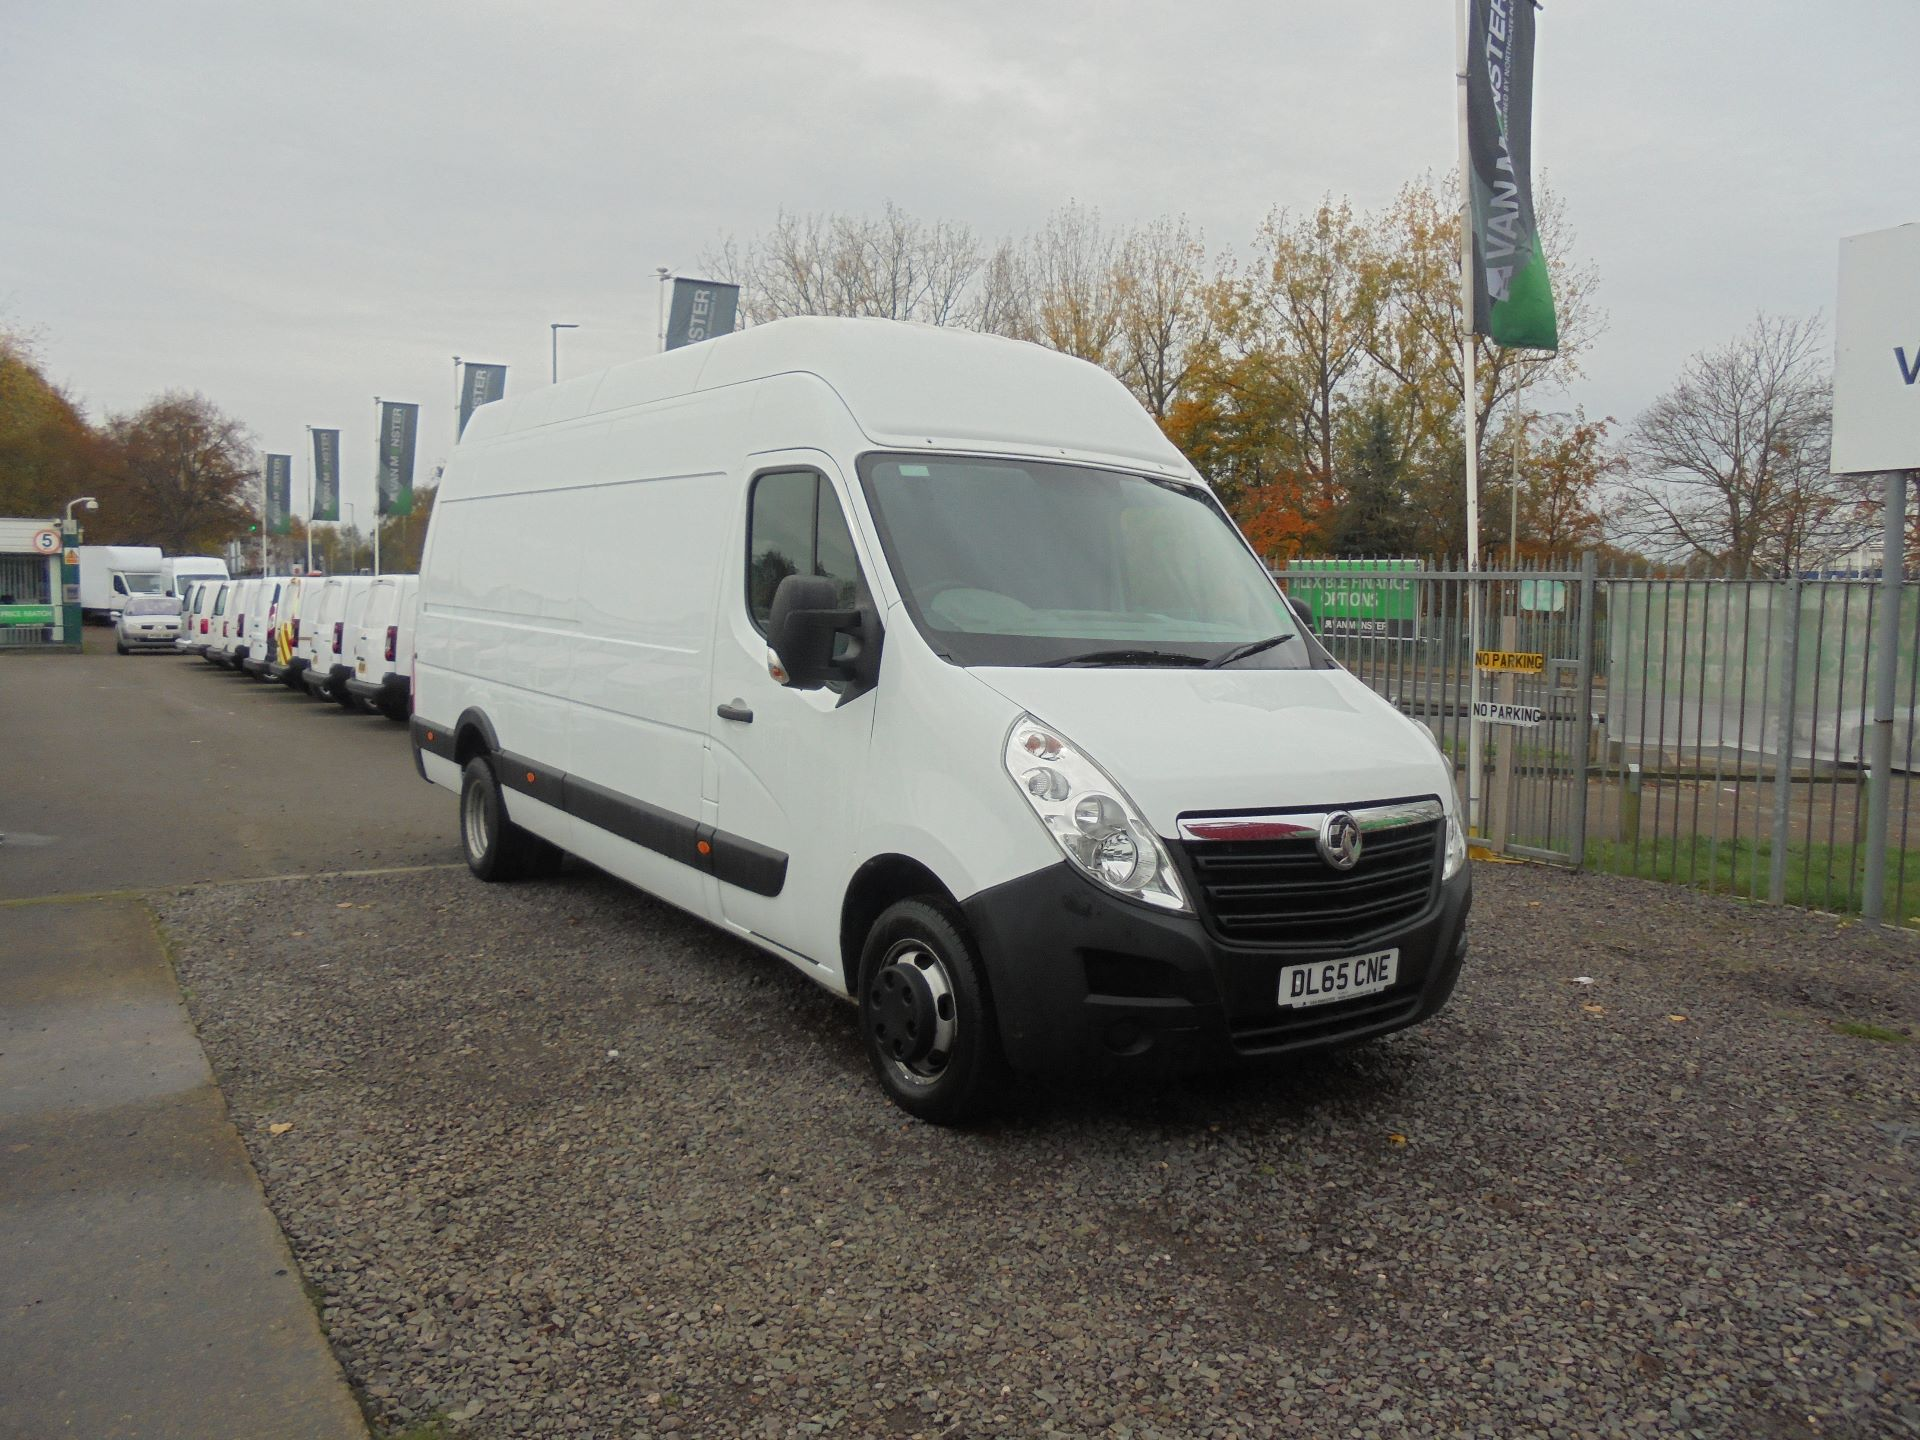 2015 Vauxhall Movano 35 L4 H3 125PS EURO 5 (DL65CNE)